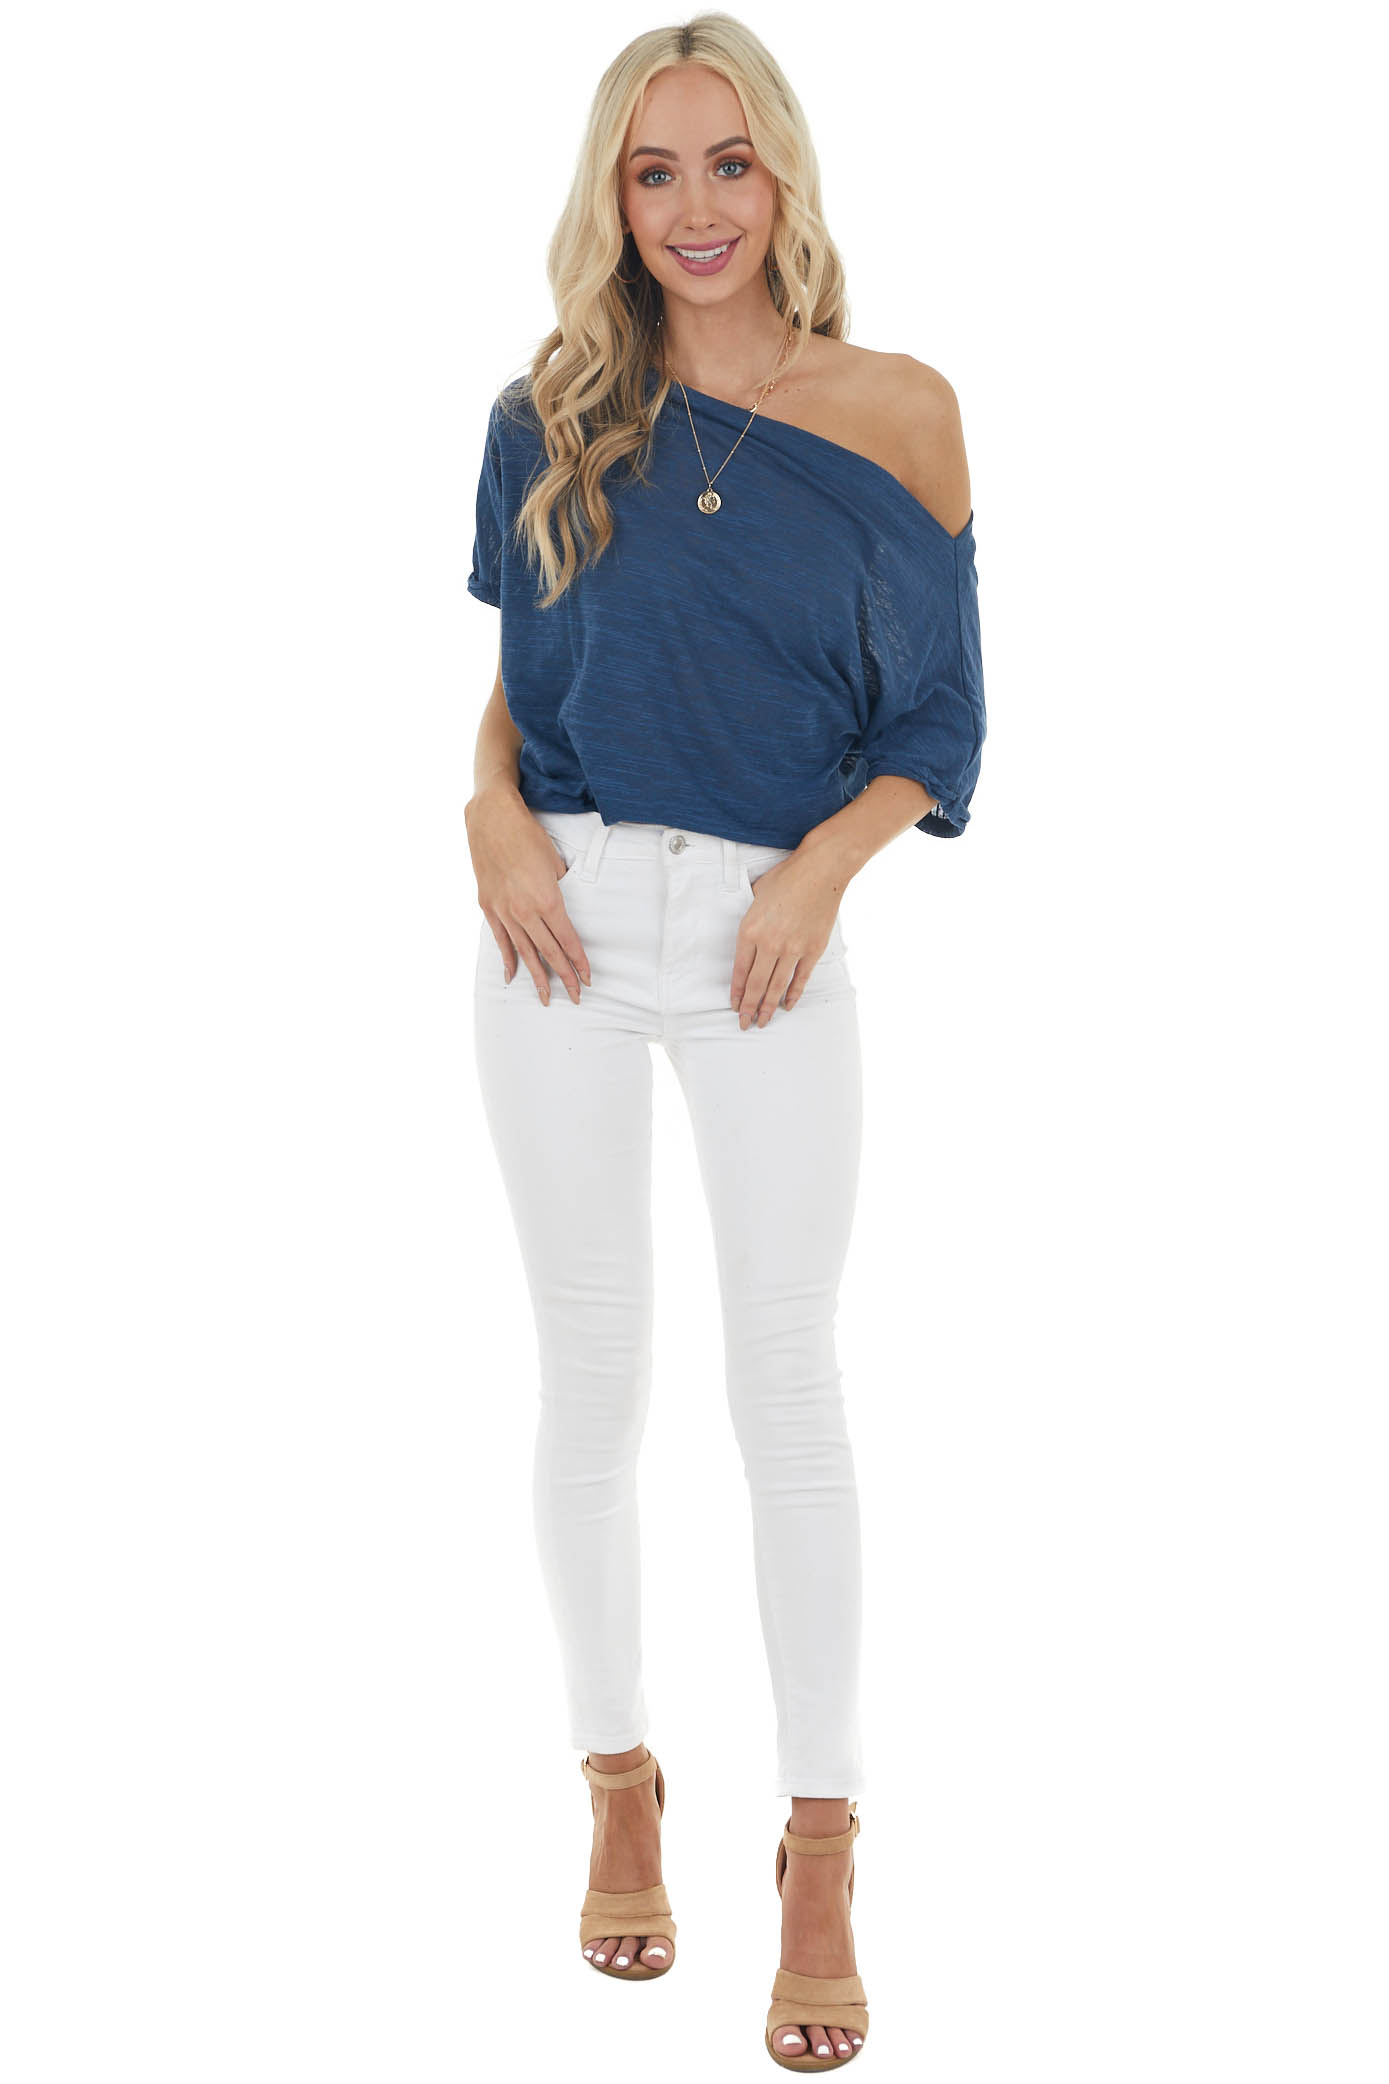 Heathered Navy Off Shoulder Top with Short Dolman Sleeves